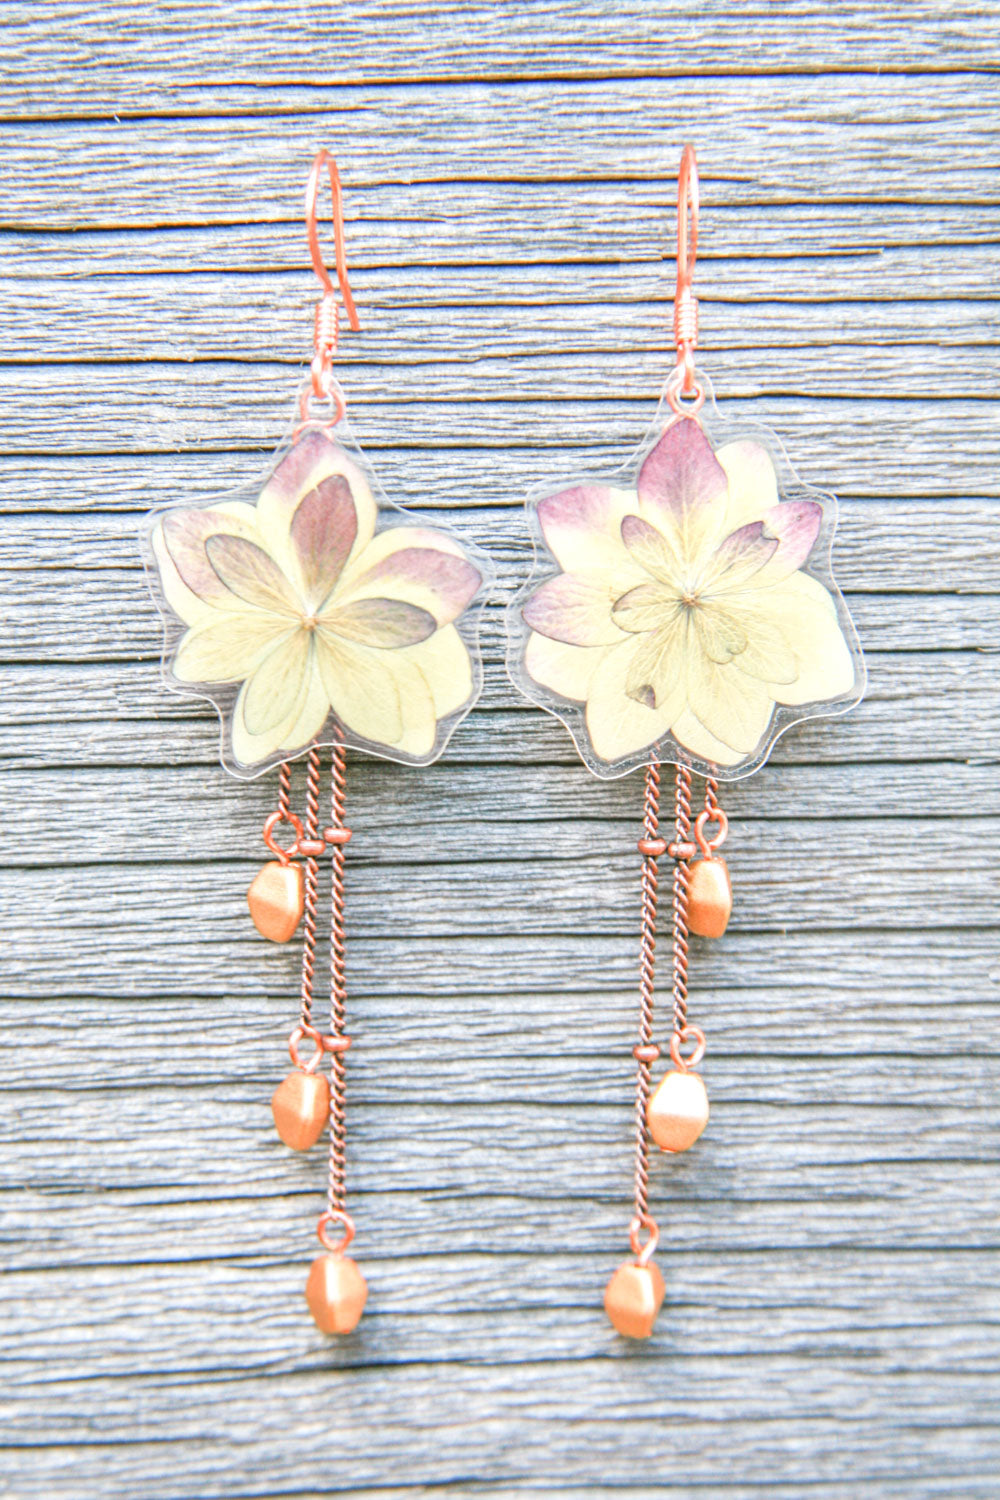 Red Green Hydrangea Pressed Petal Earrings with Flax Glass Beads